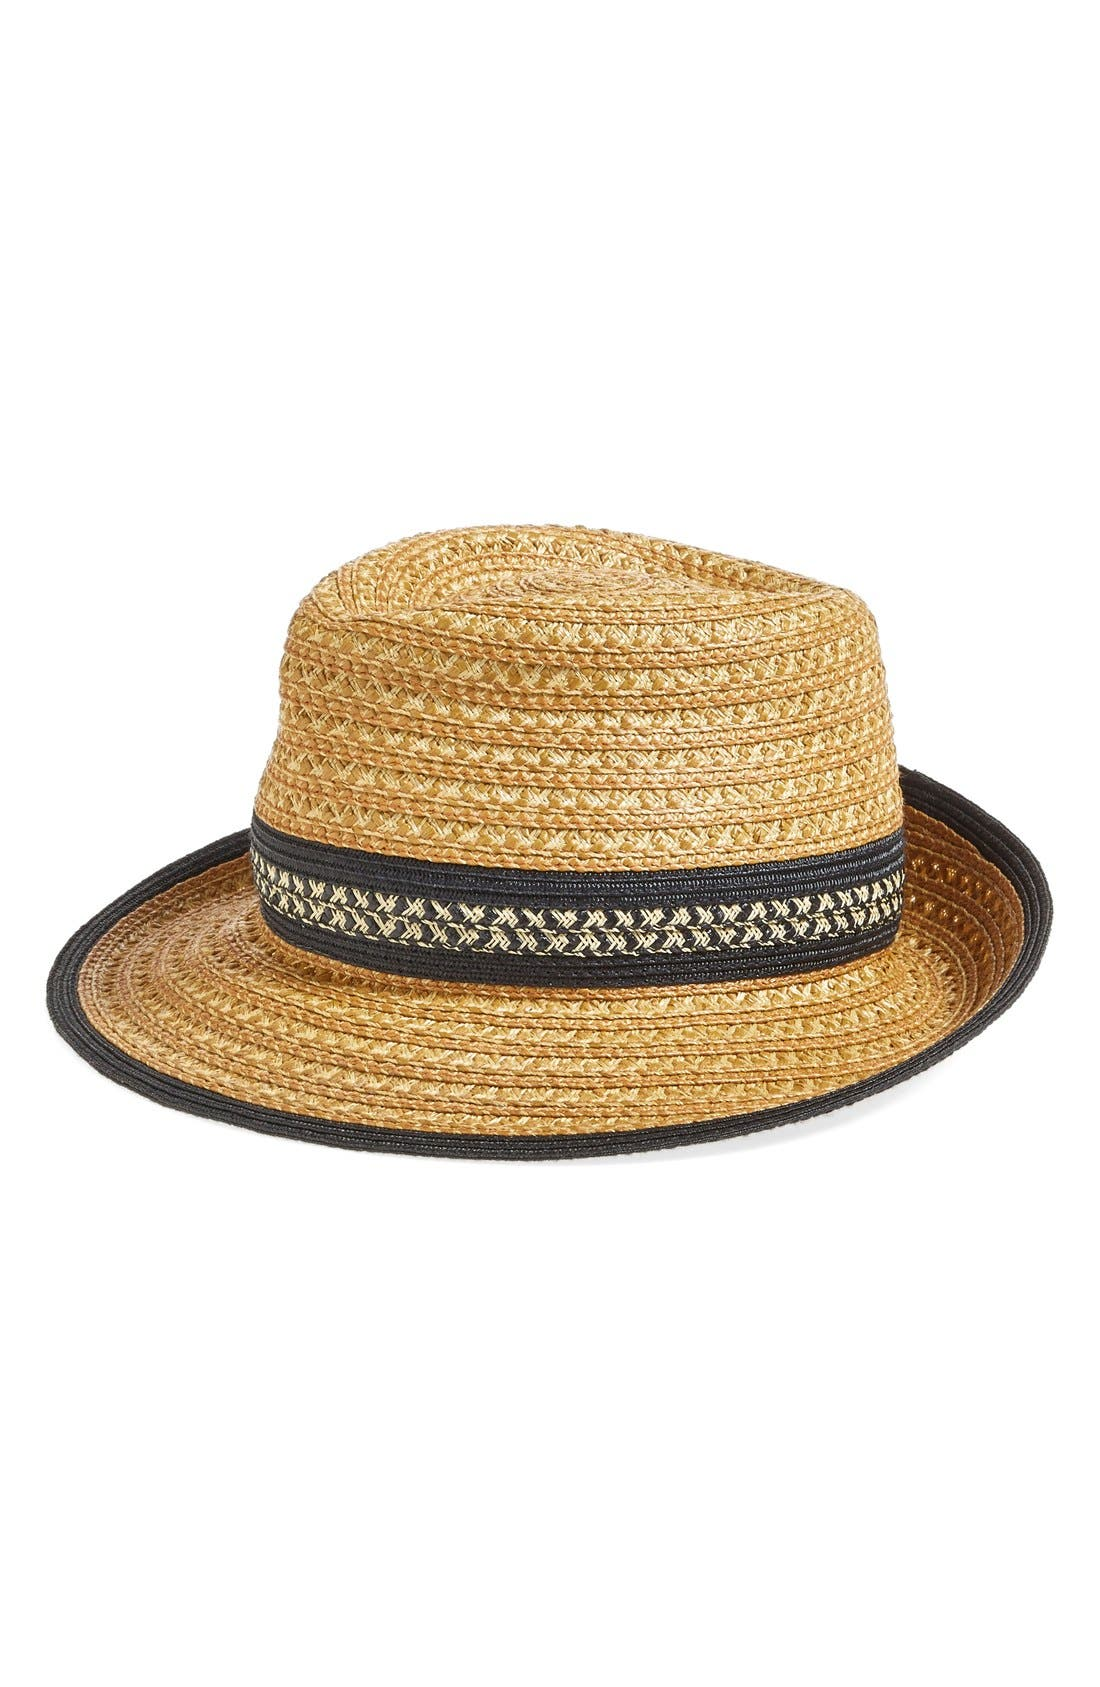 Squishee<sup>®</sup> Straw Fedora,                         Main,                         color, Natural/ Black Mix